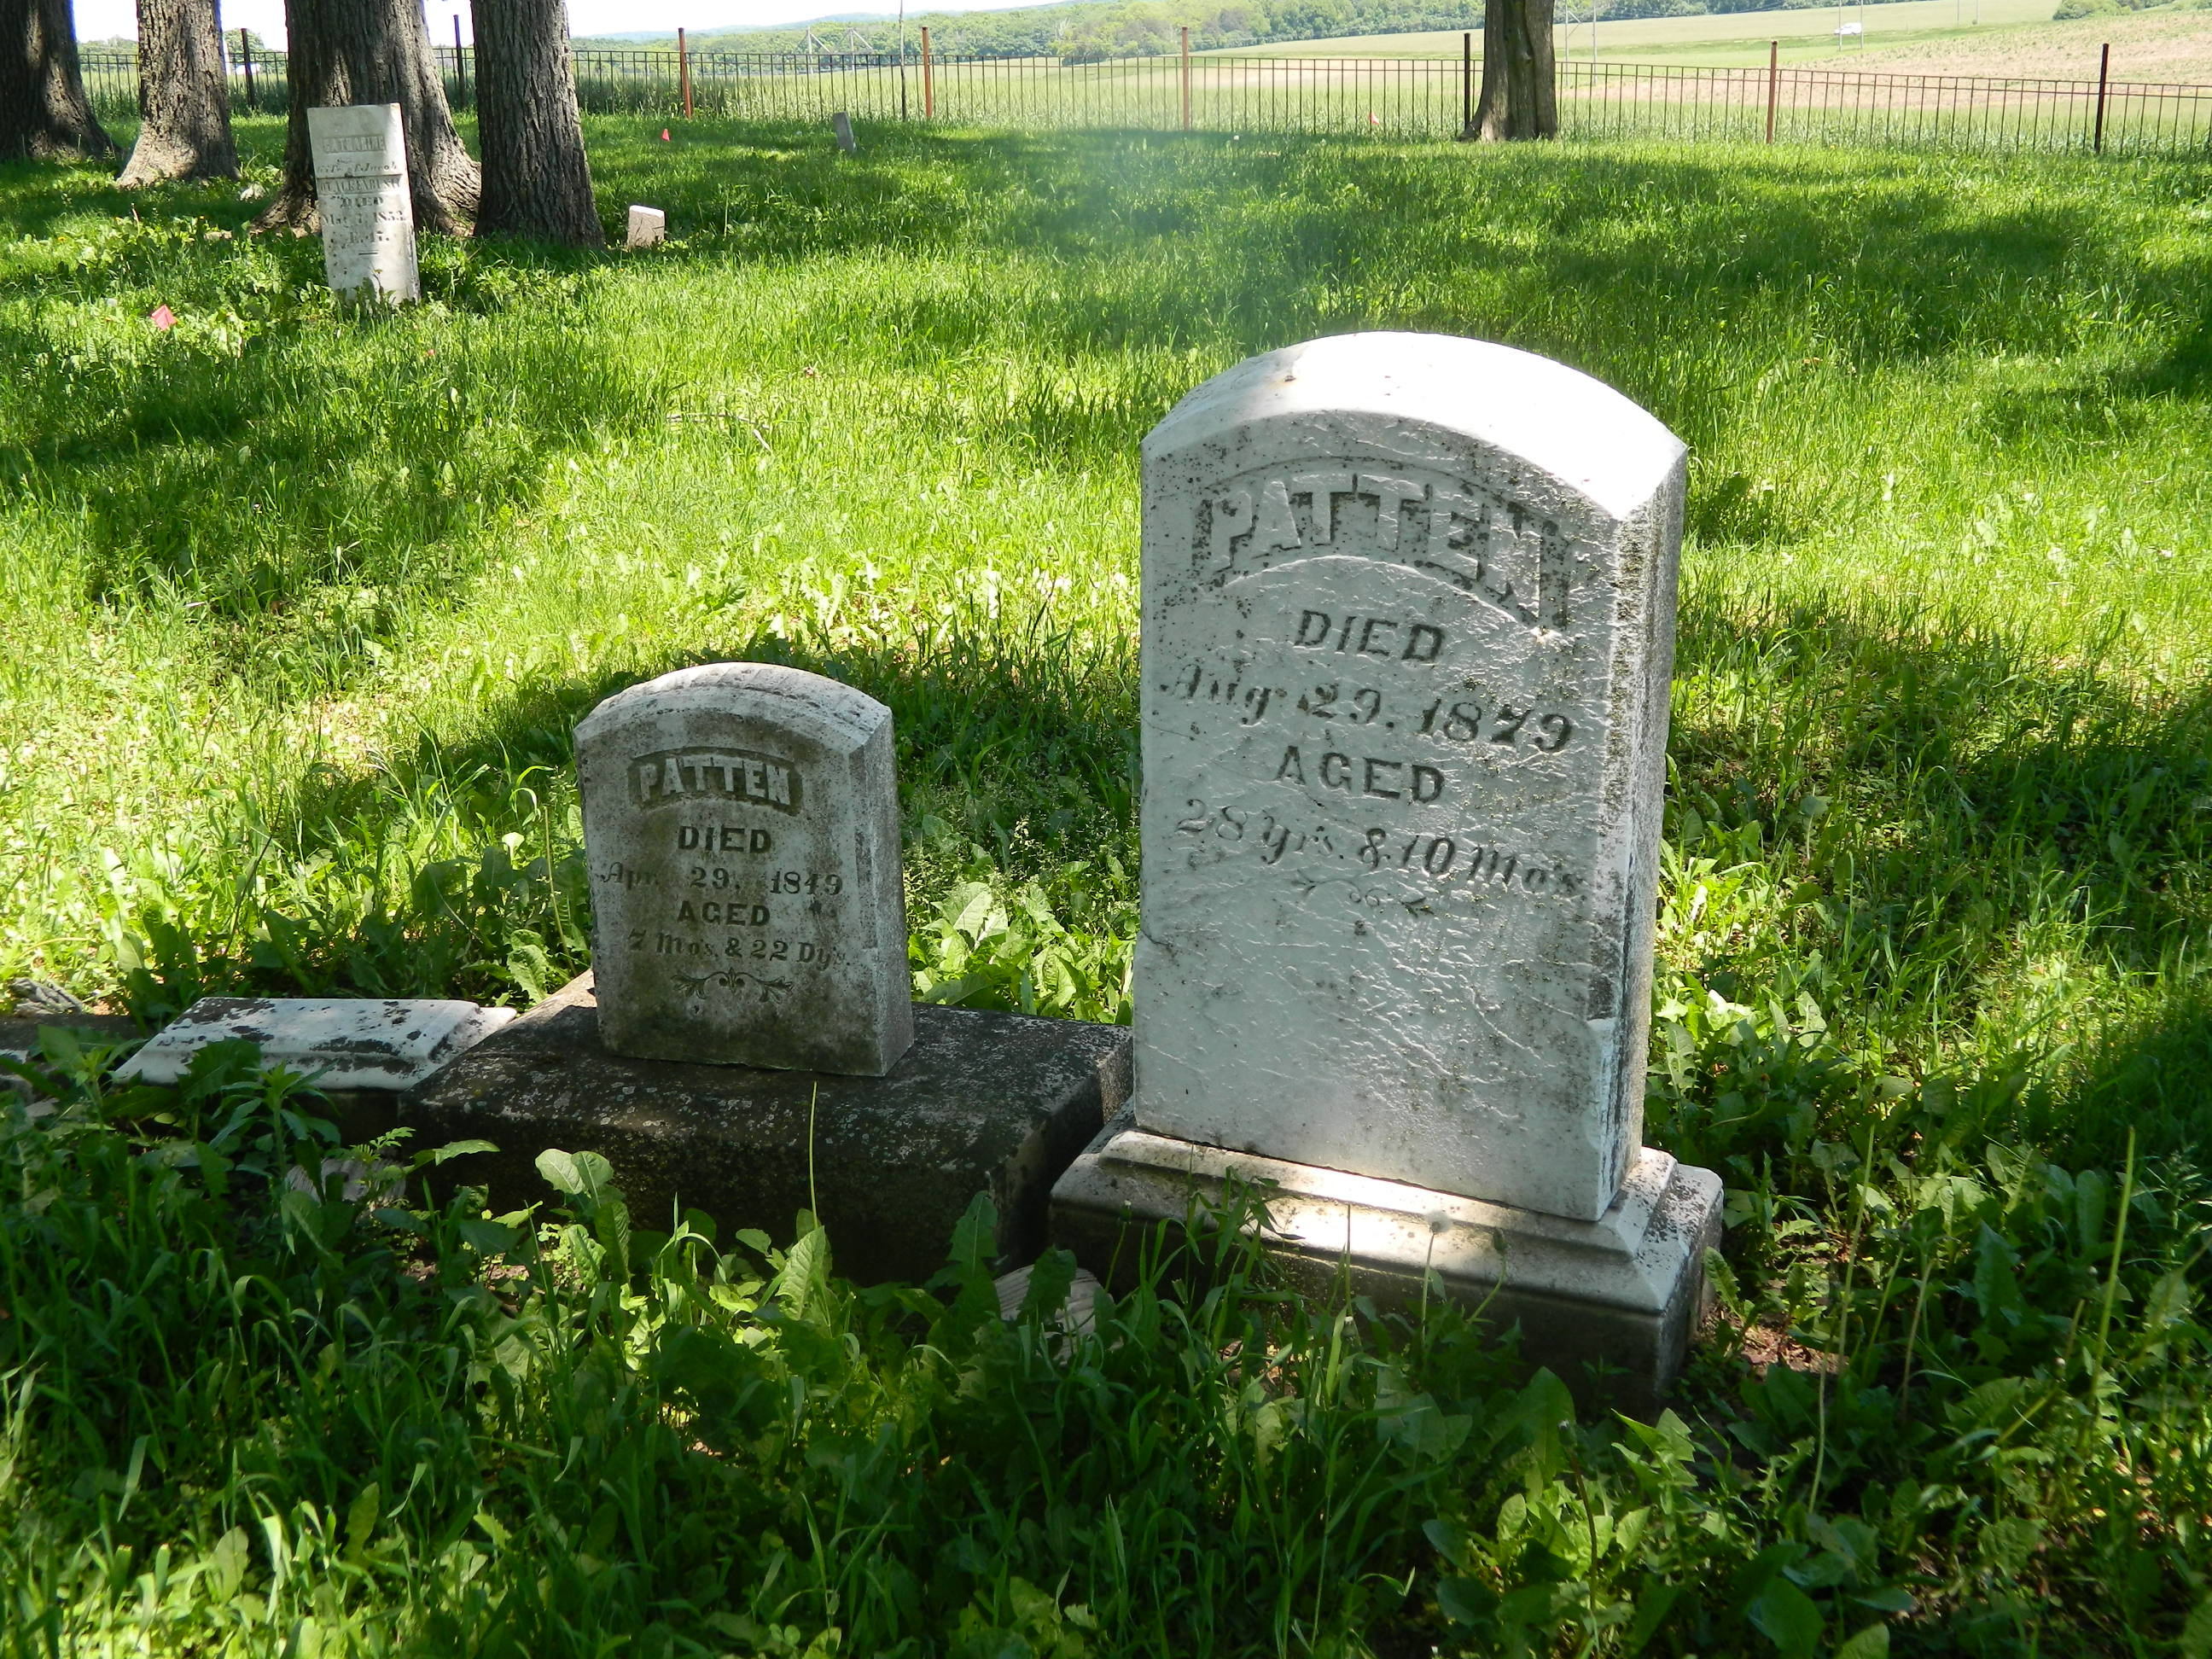 Markers for the graves of members of the Patten family